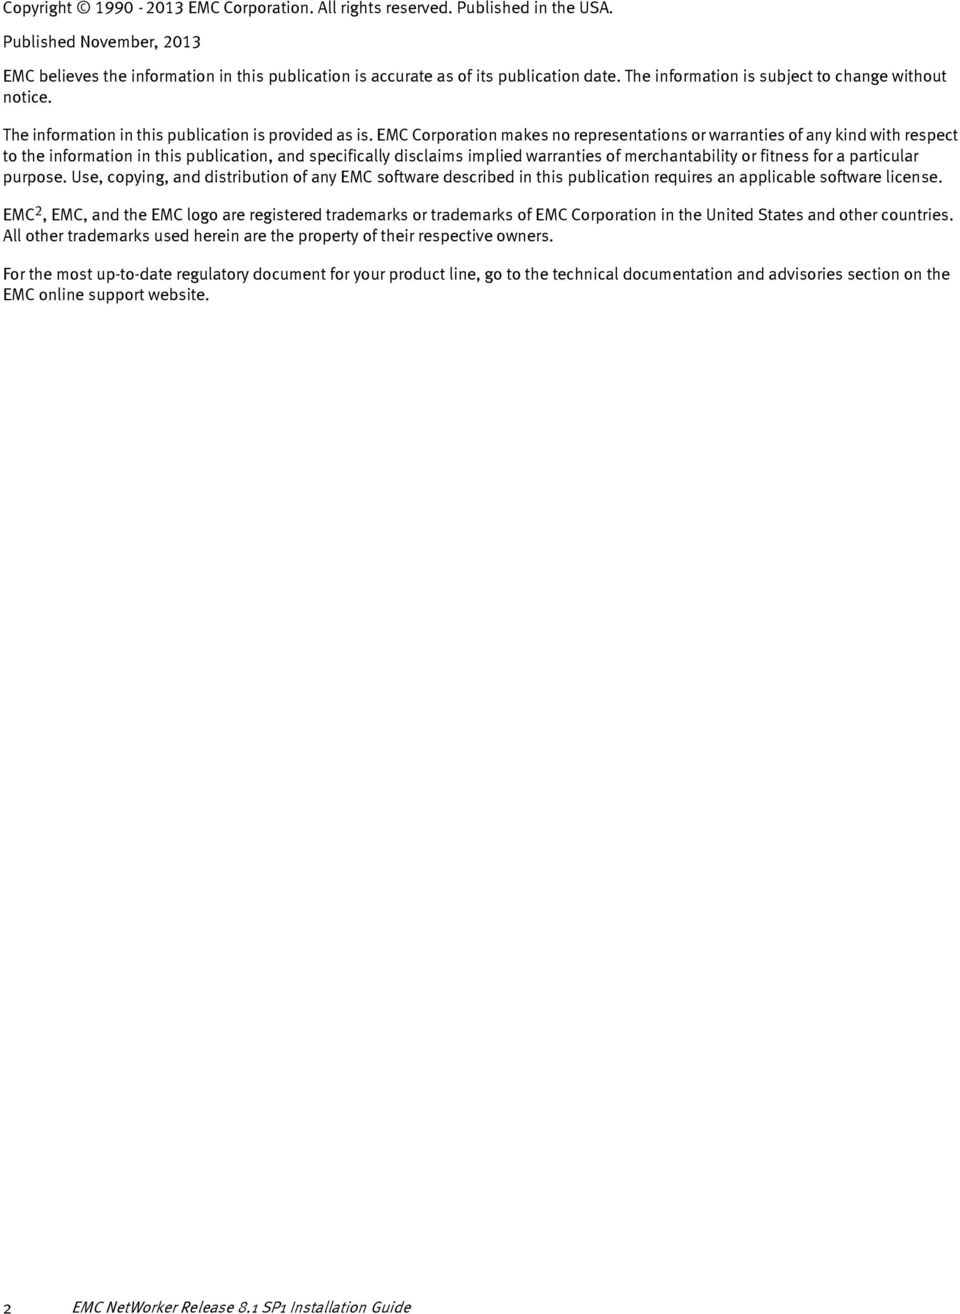 EMC NetWorker  Installation Guide  Release 8 1 Service Pack 1 P/N